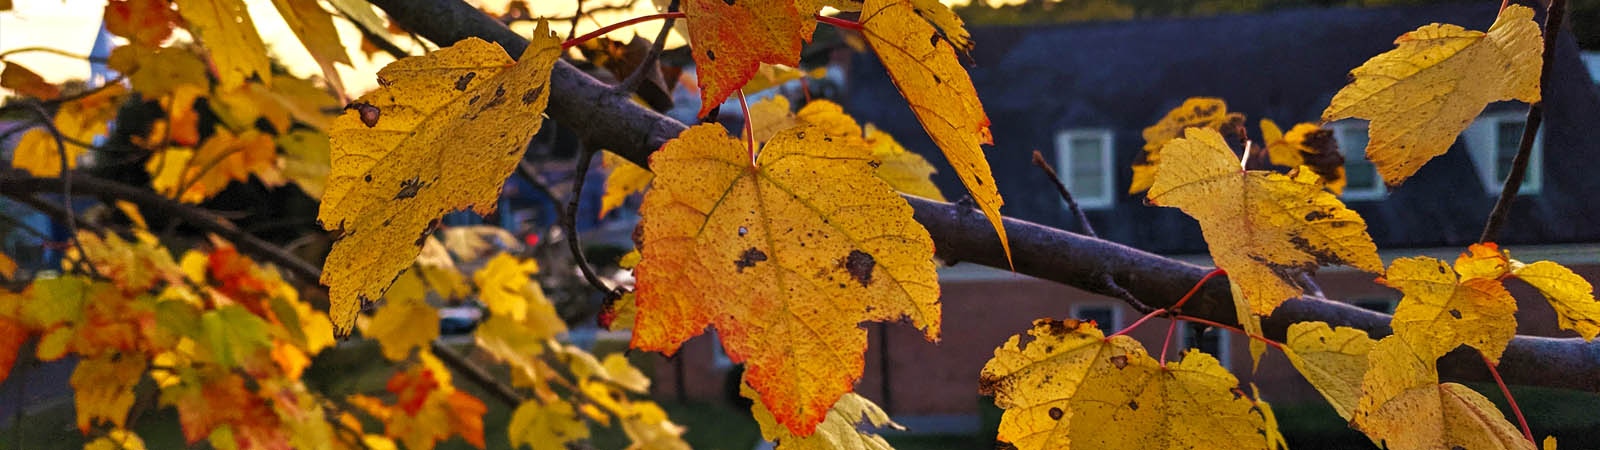 Staunton's Fall Foliage Report:  Weekend of October 18-20